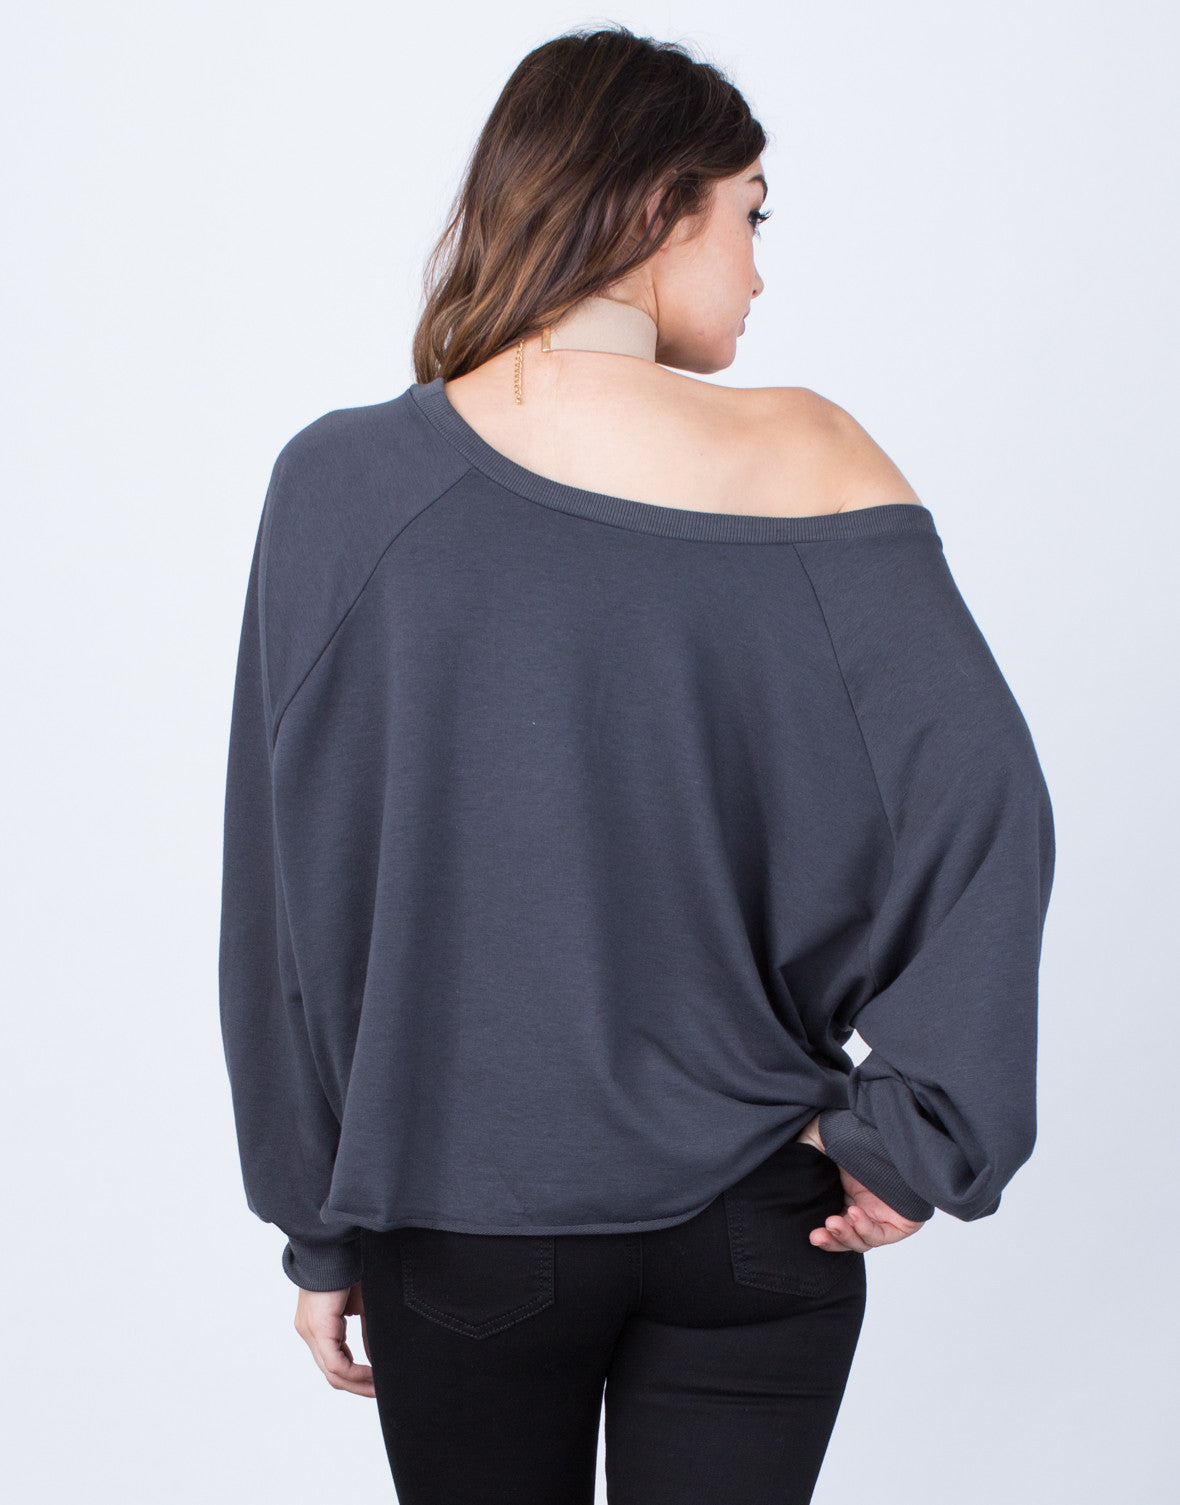 Back View of Oversized Front Tie Sweater